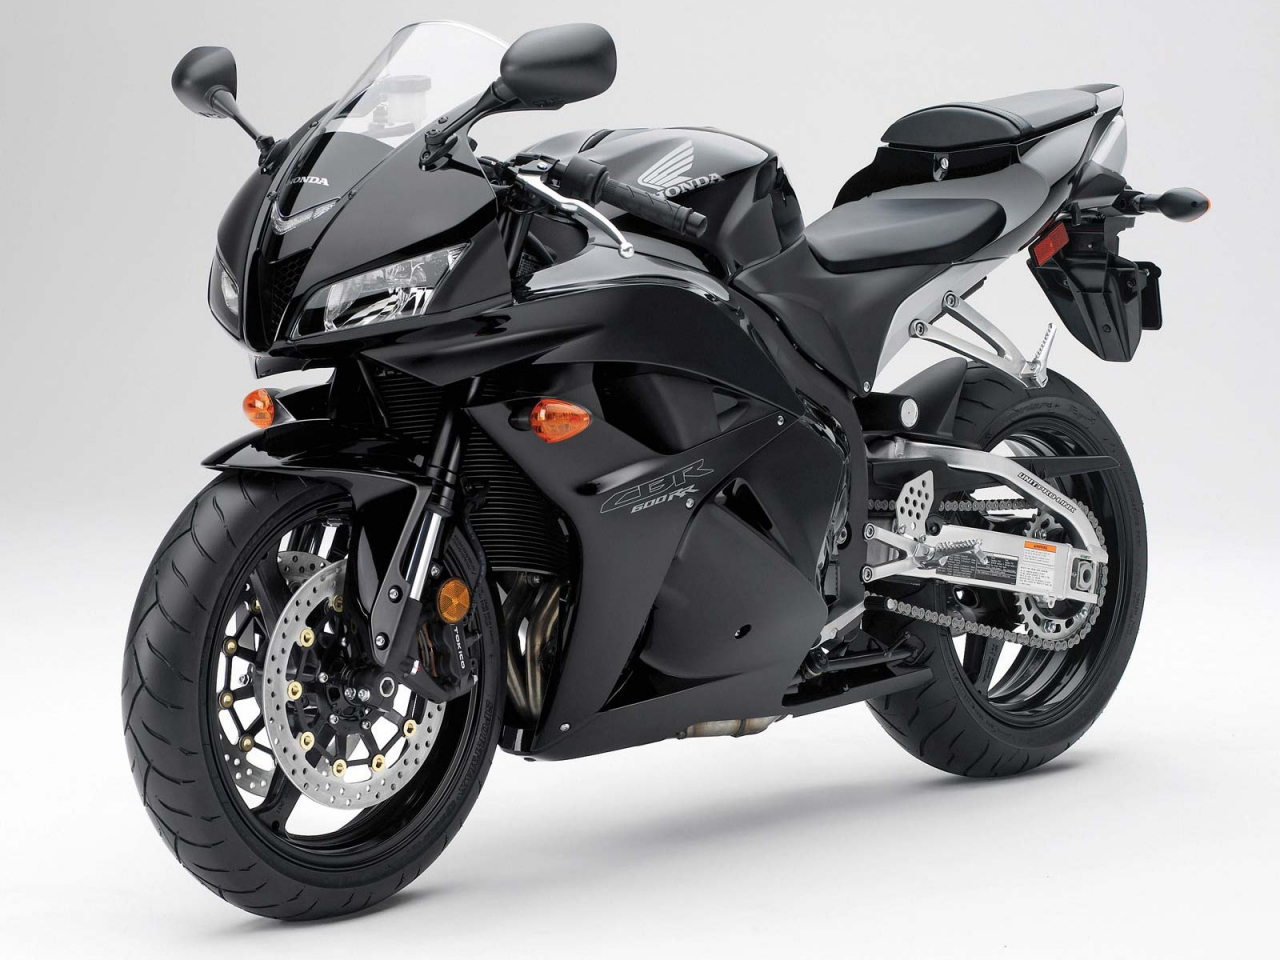 2014 CBR 600rr | Motorcycle template